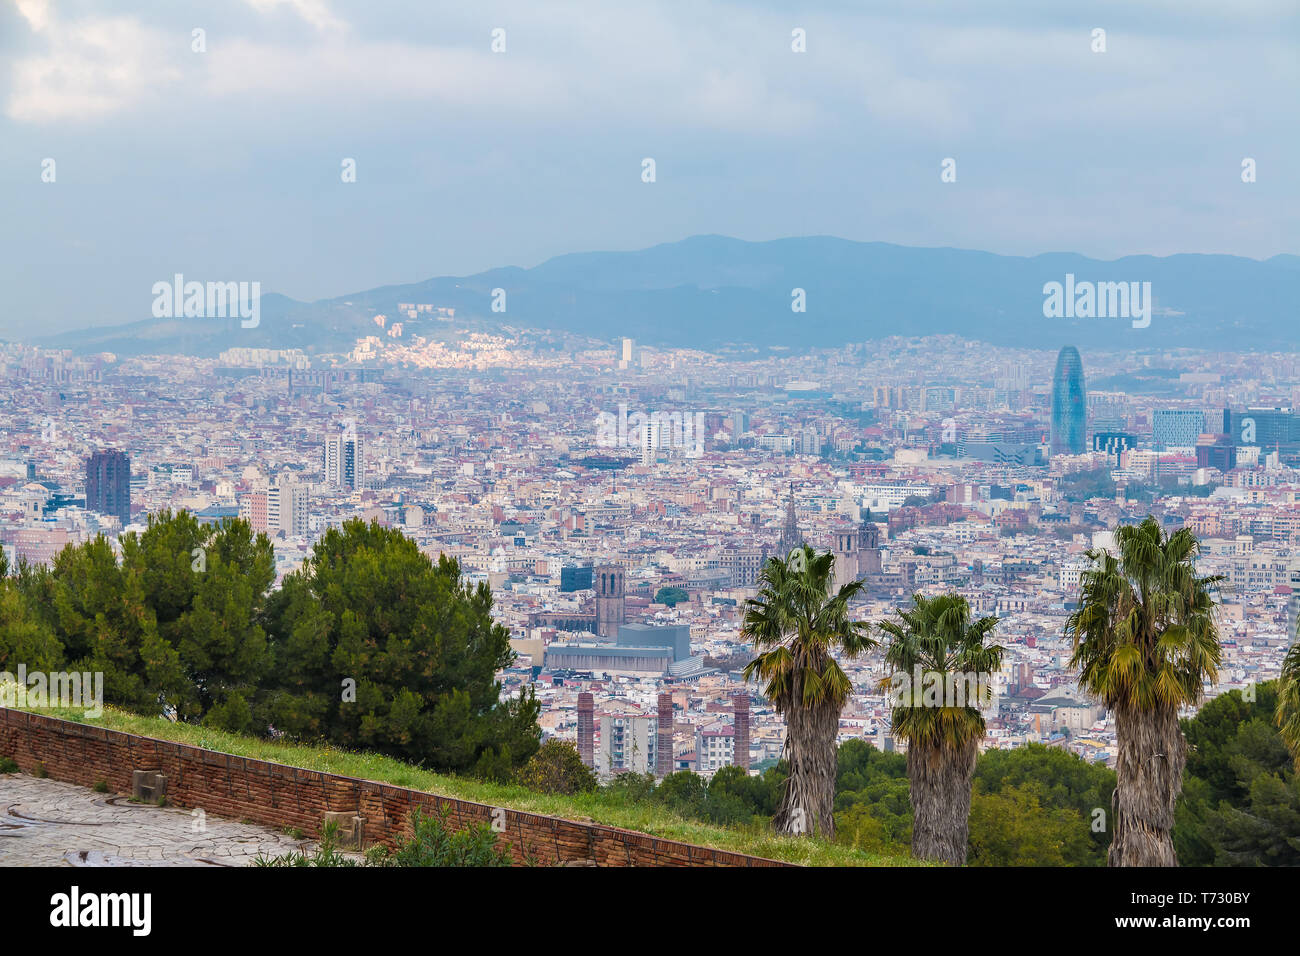 Aerial View Of The Barcelona City Behind Trees And Grass On The Background Of Mountains In Overcast Day Spain Stock Photo Alamy